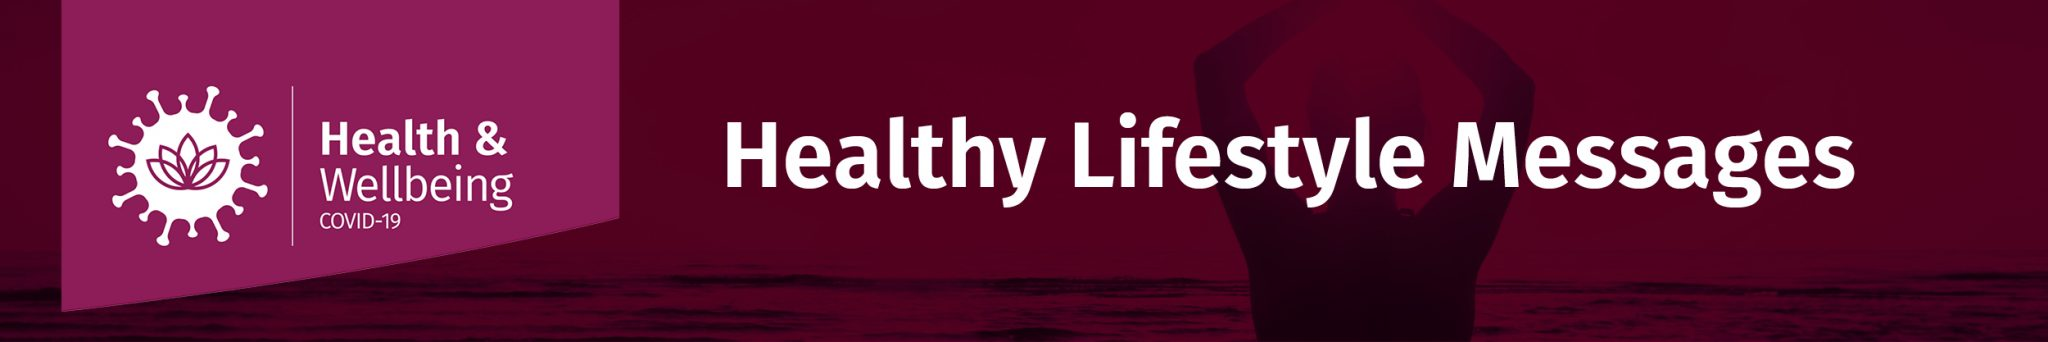 Healthy lifestyle messages